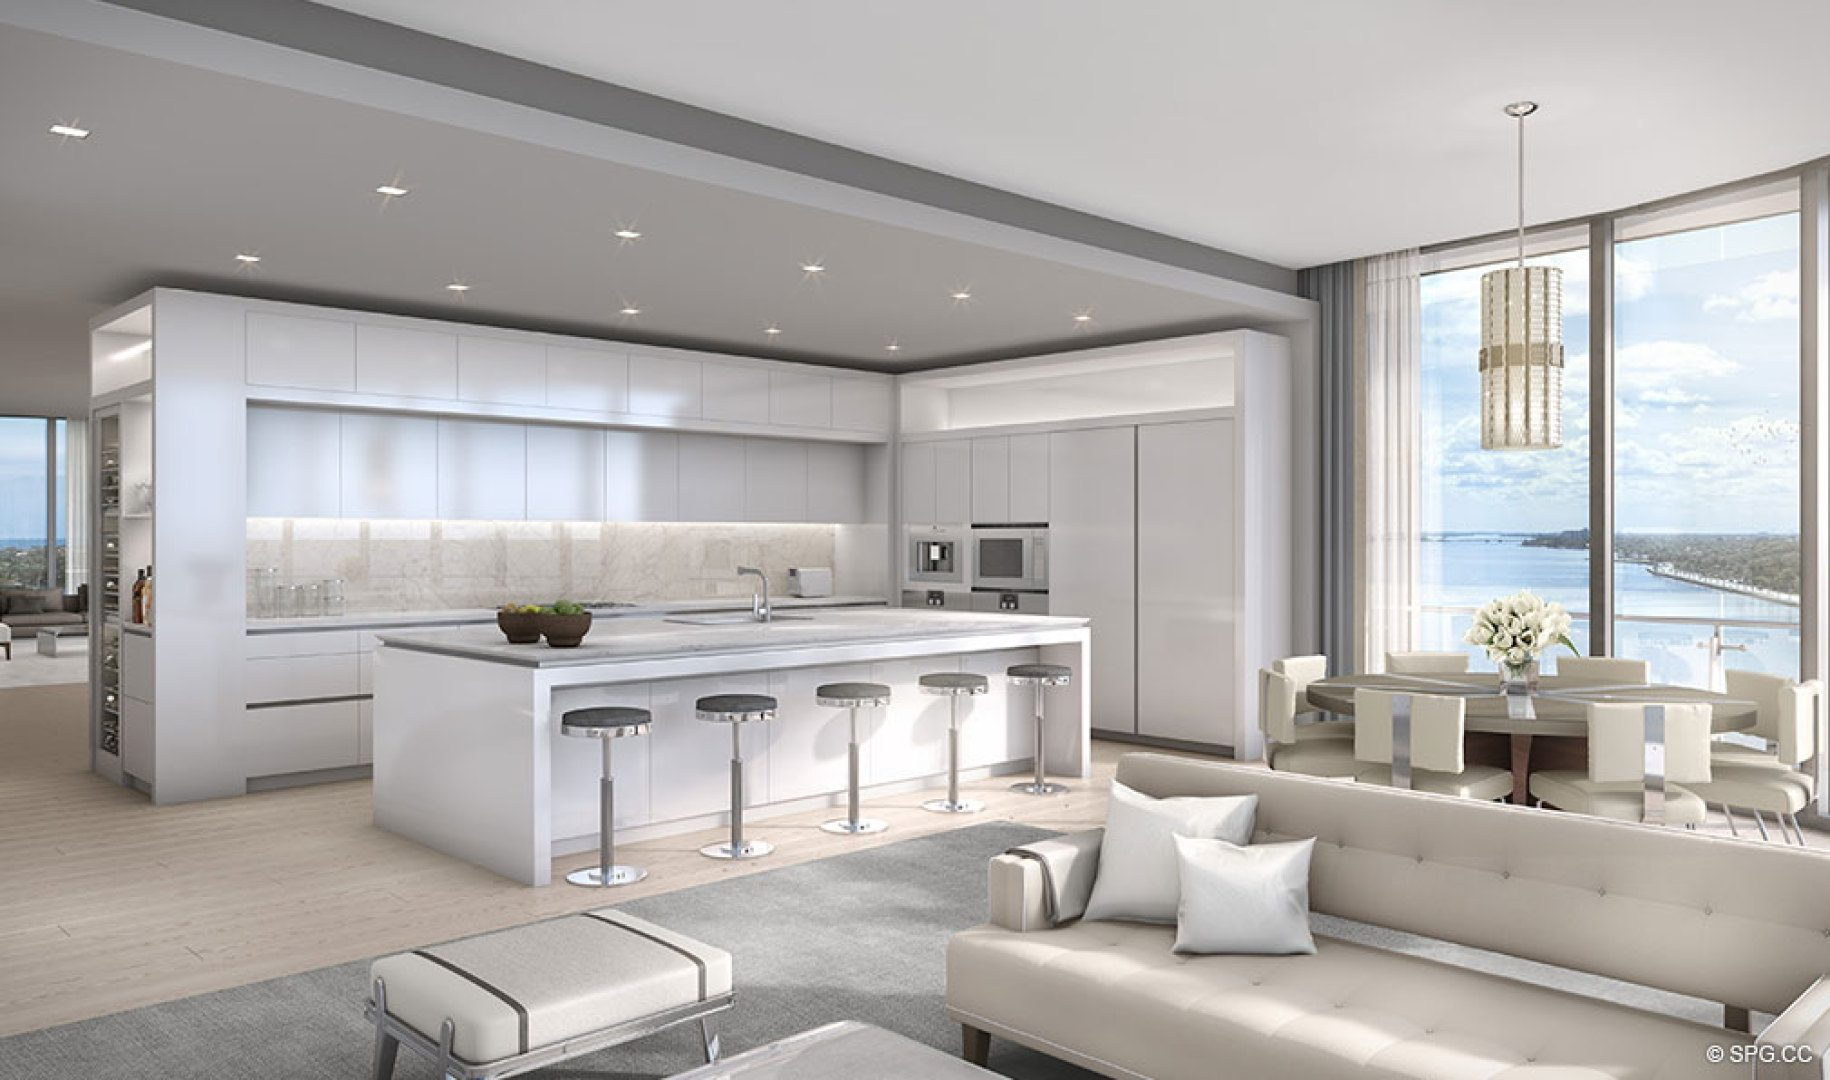 Open Kitchen Concept at The Bristol, Luxury Waterfront Condos in West Palm Beach, Florida 33401